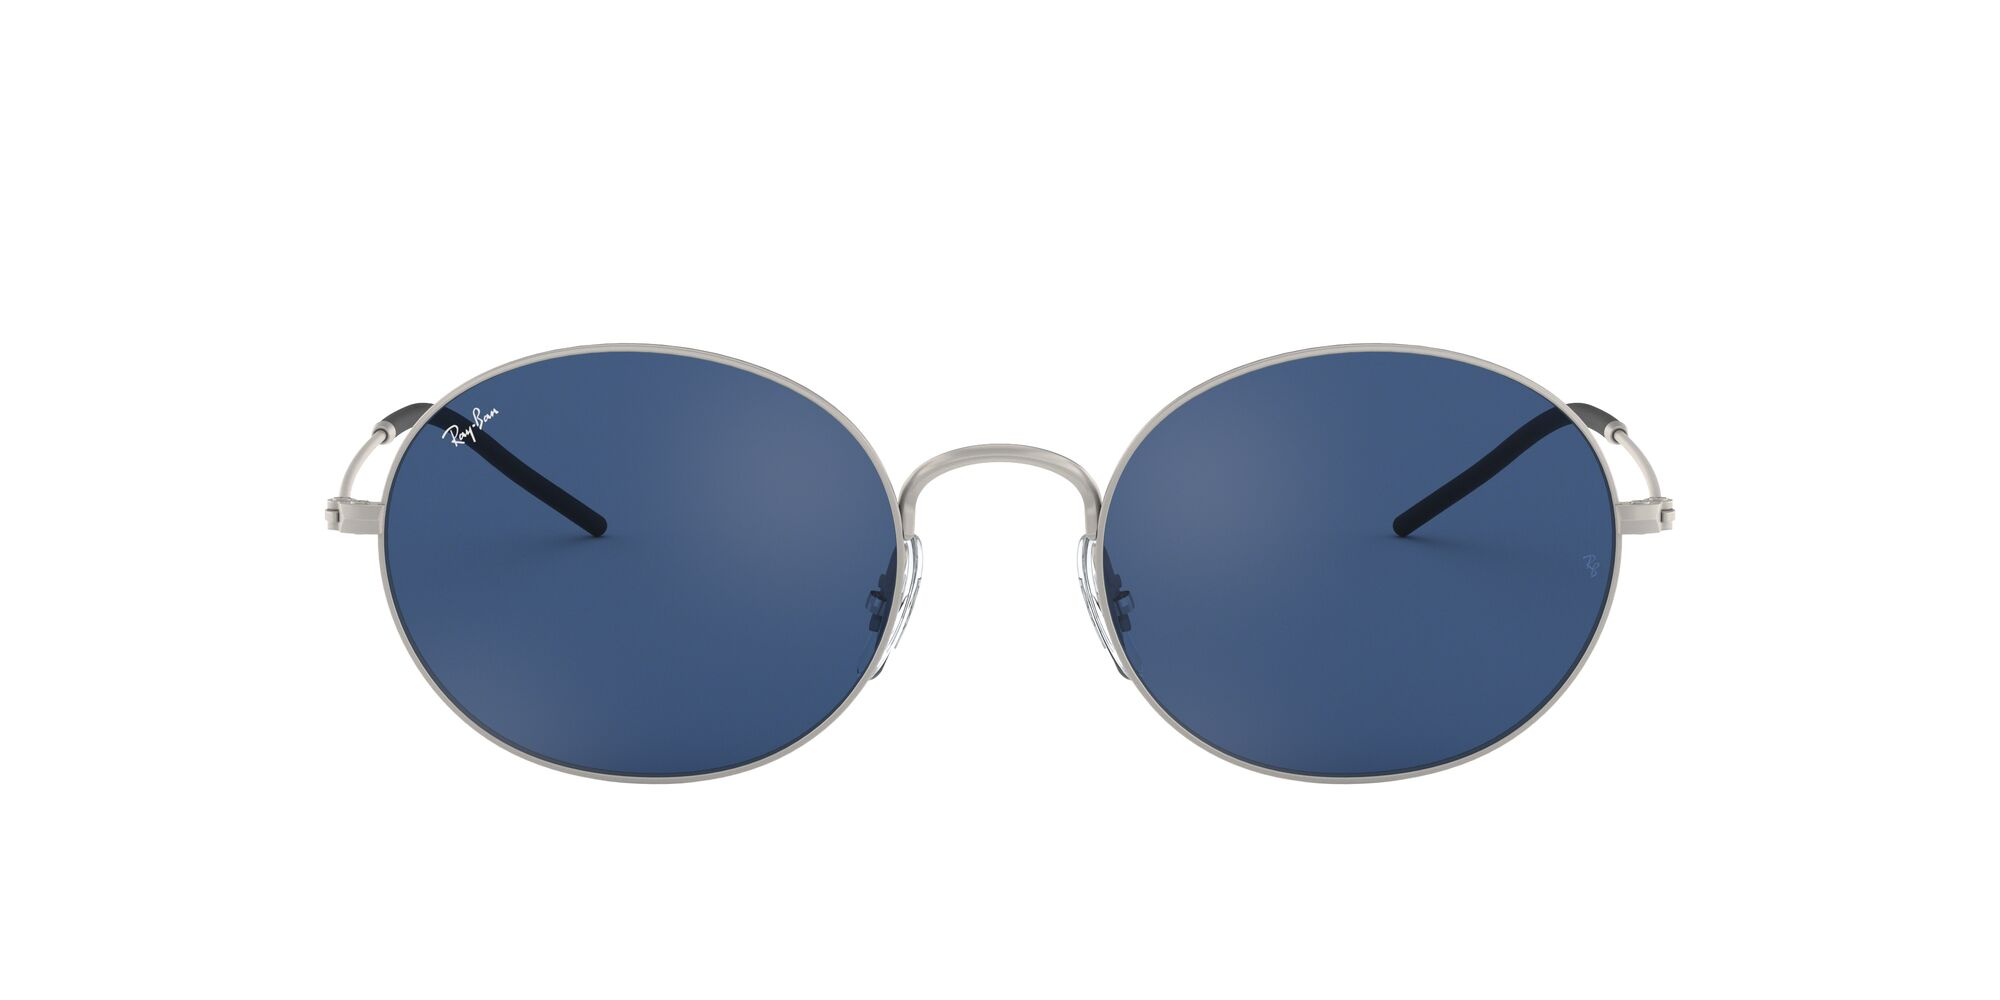 Front Ray-Ban Ray-Ban 0RB3594 911680 53/20 Zilver/Blauw